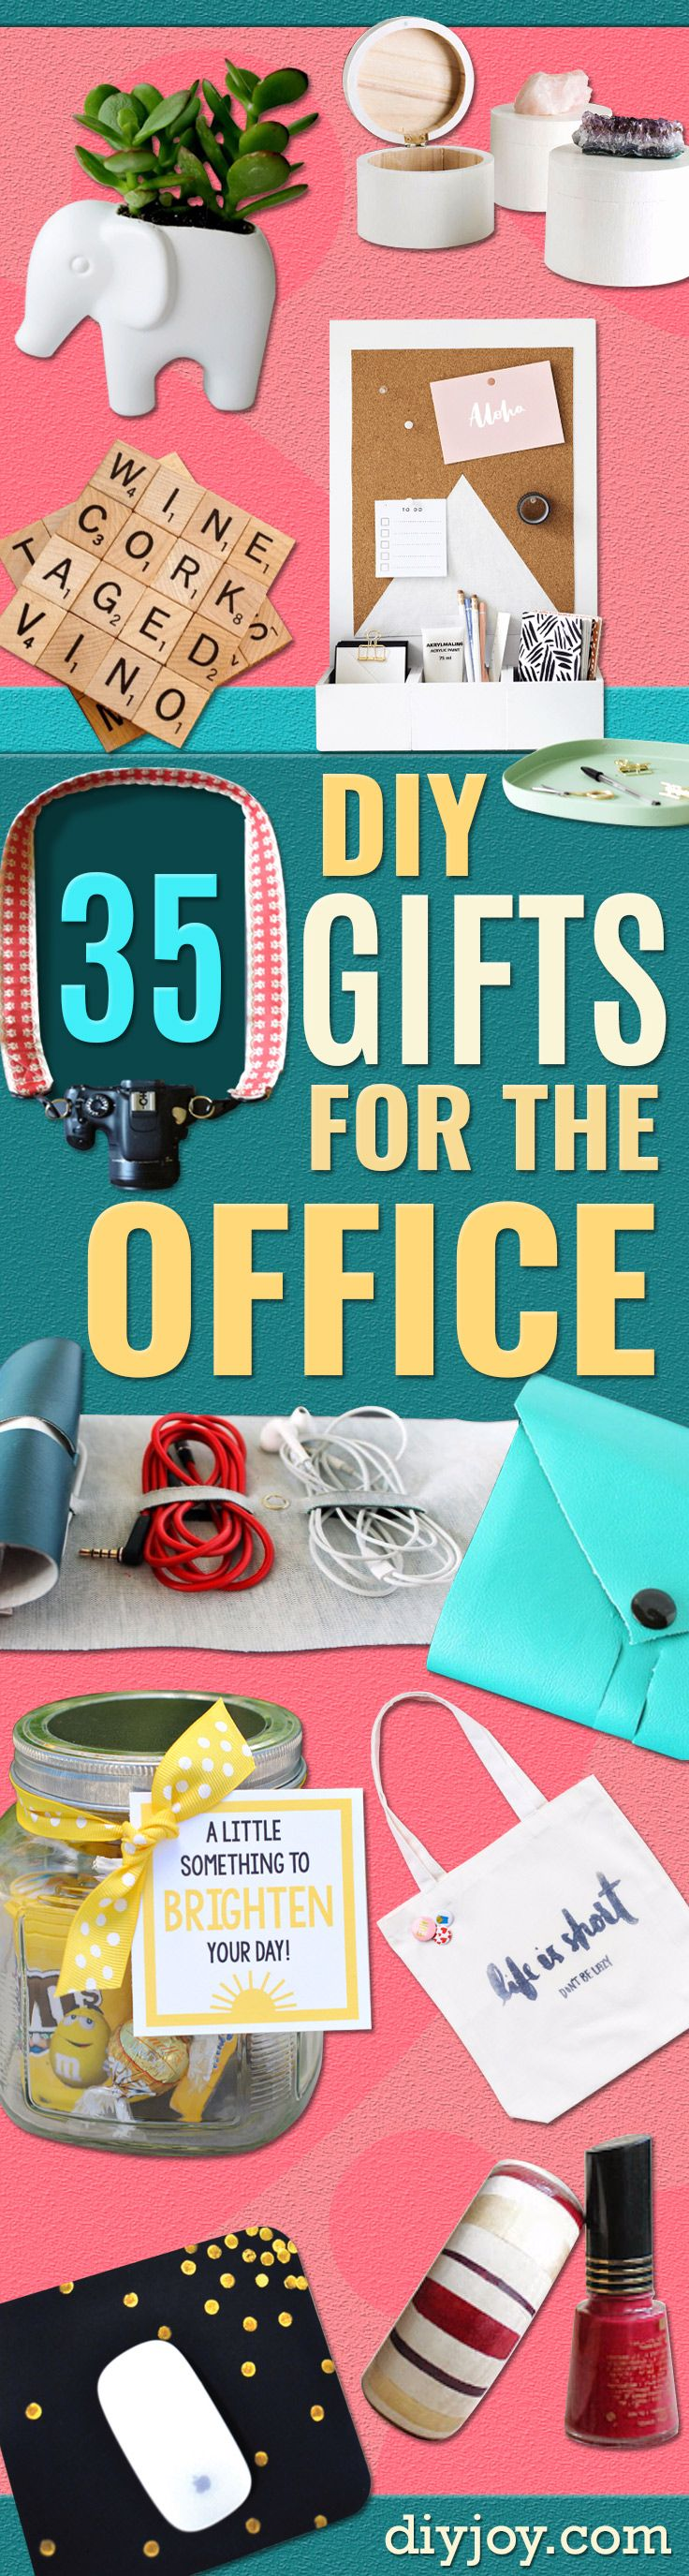 35 cheap and easy gifts for the office | misc | pinterest | gifts